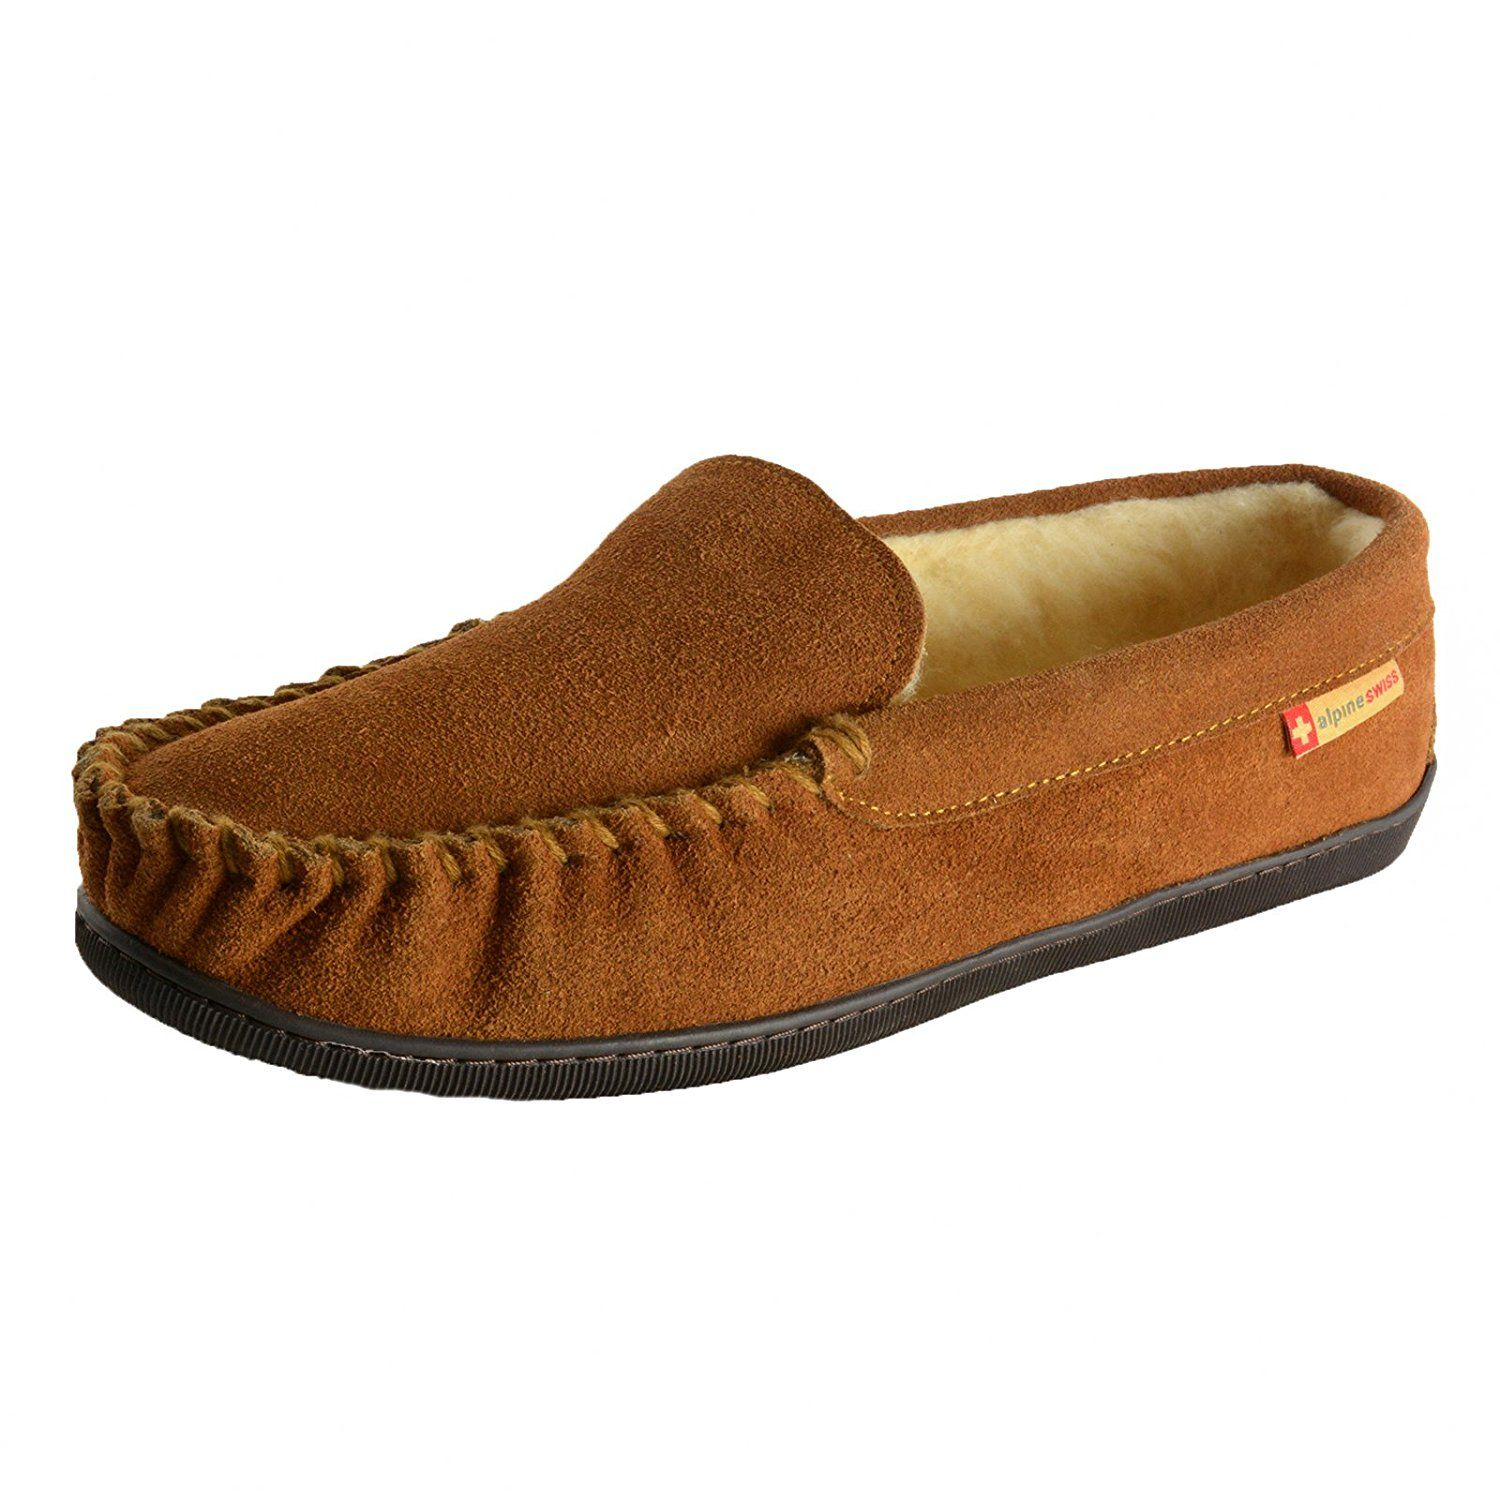 5e43dd7be Amazon.com | Alpine Swiss Sabine Womens Suede Shearling Slip On Moccasin  Slippers | Slippers